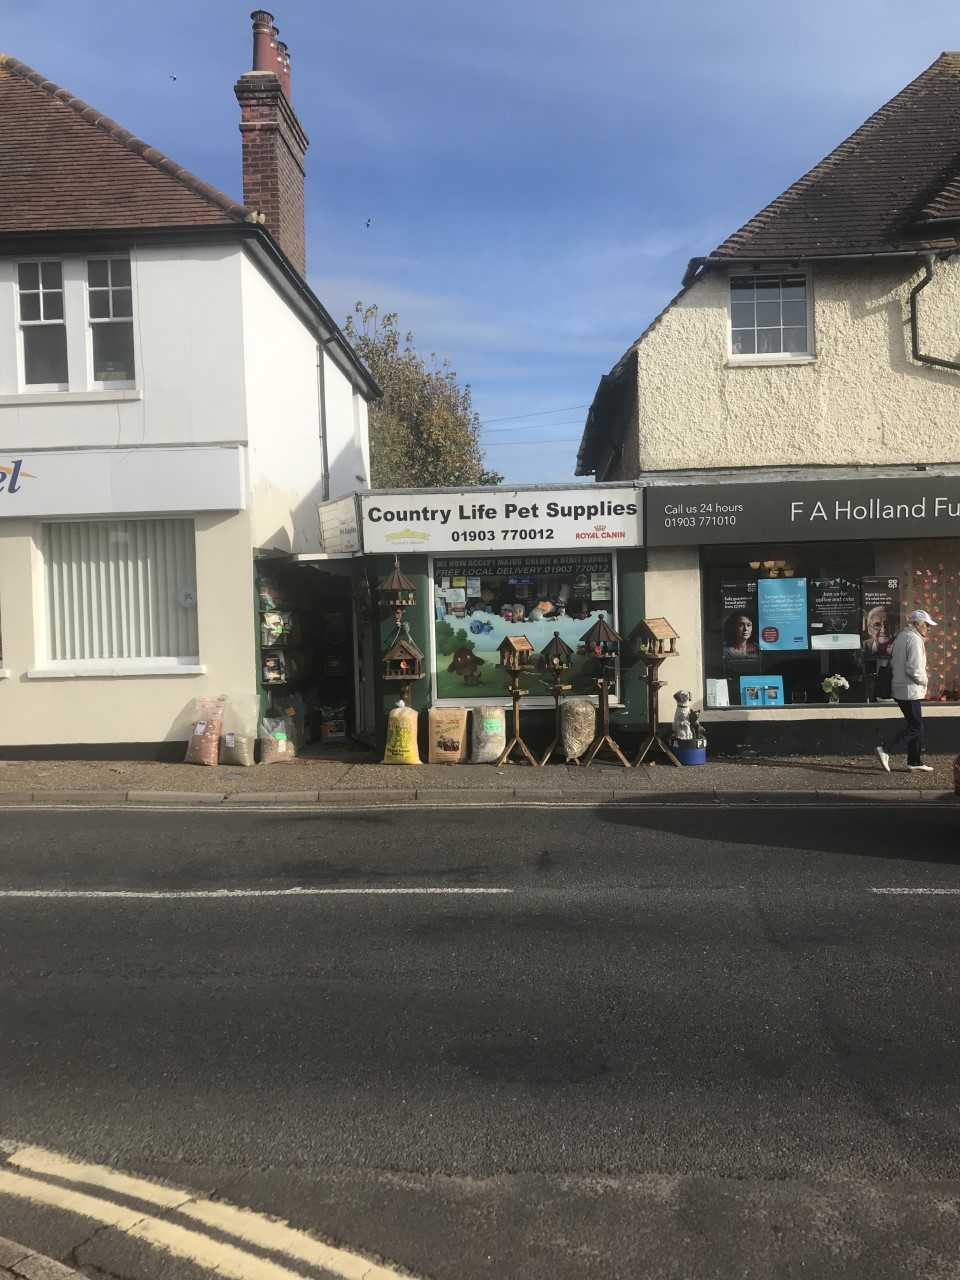 Country Life Pet Supplies in Rustington (1)